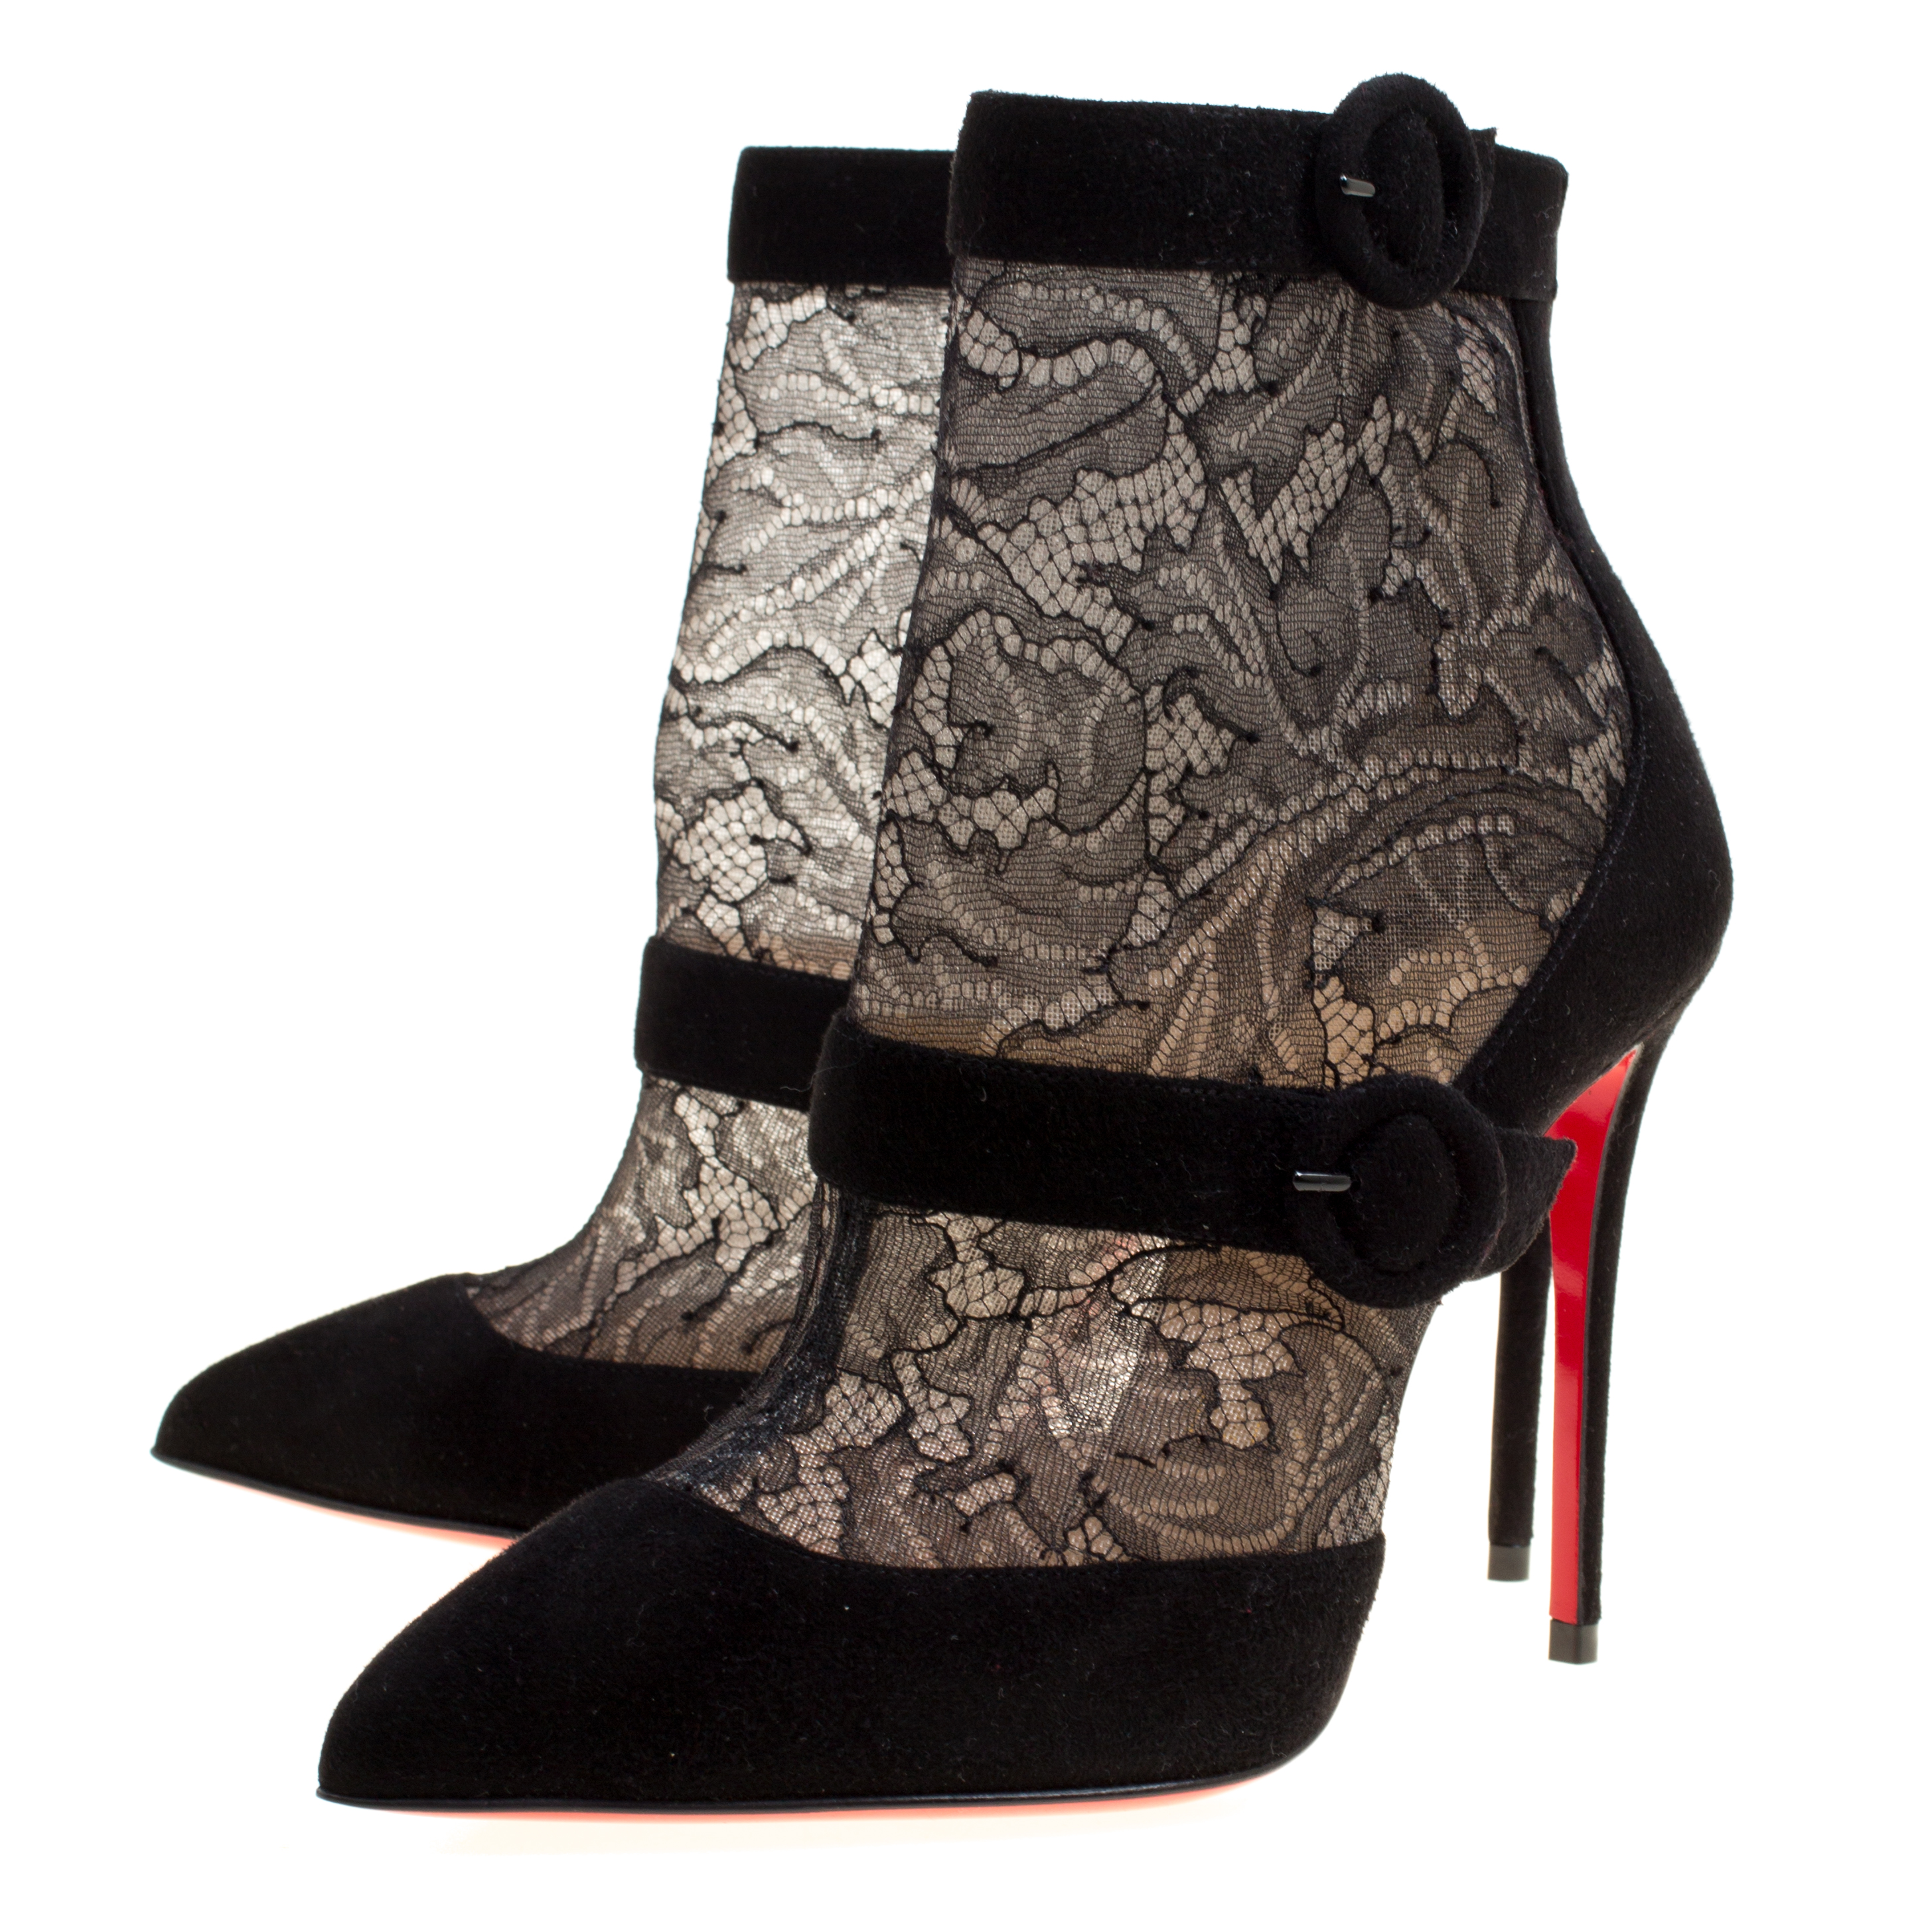 new styles 83189 8fb33 Christian Louboutin Black Lace and Suede Boteboot Pointed Toe Ankle Booties  Size 36